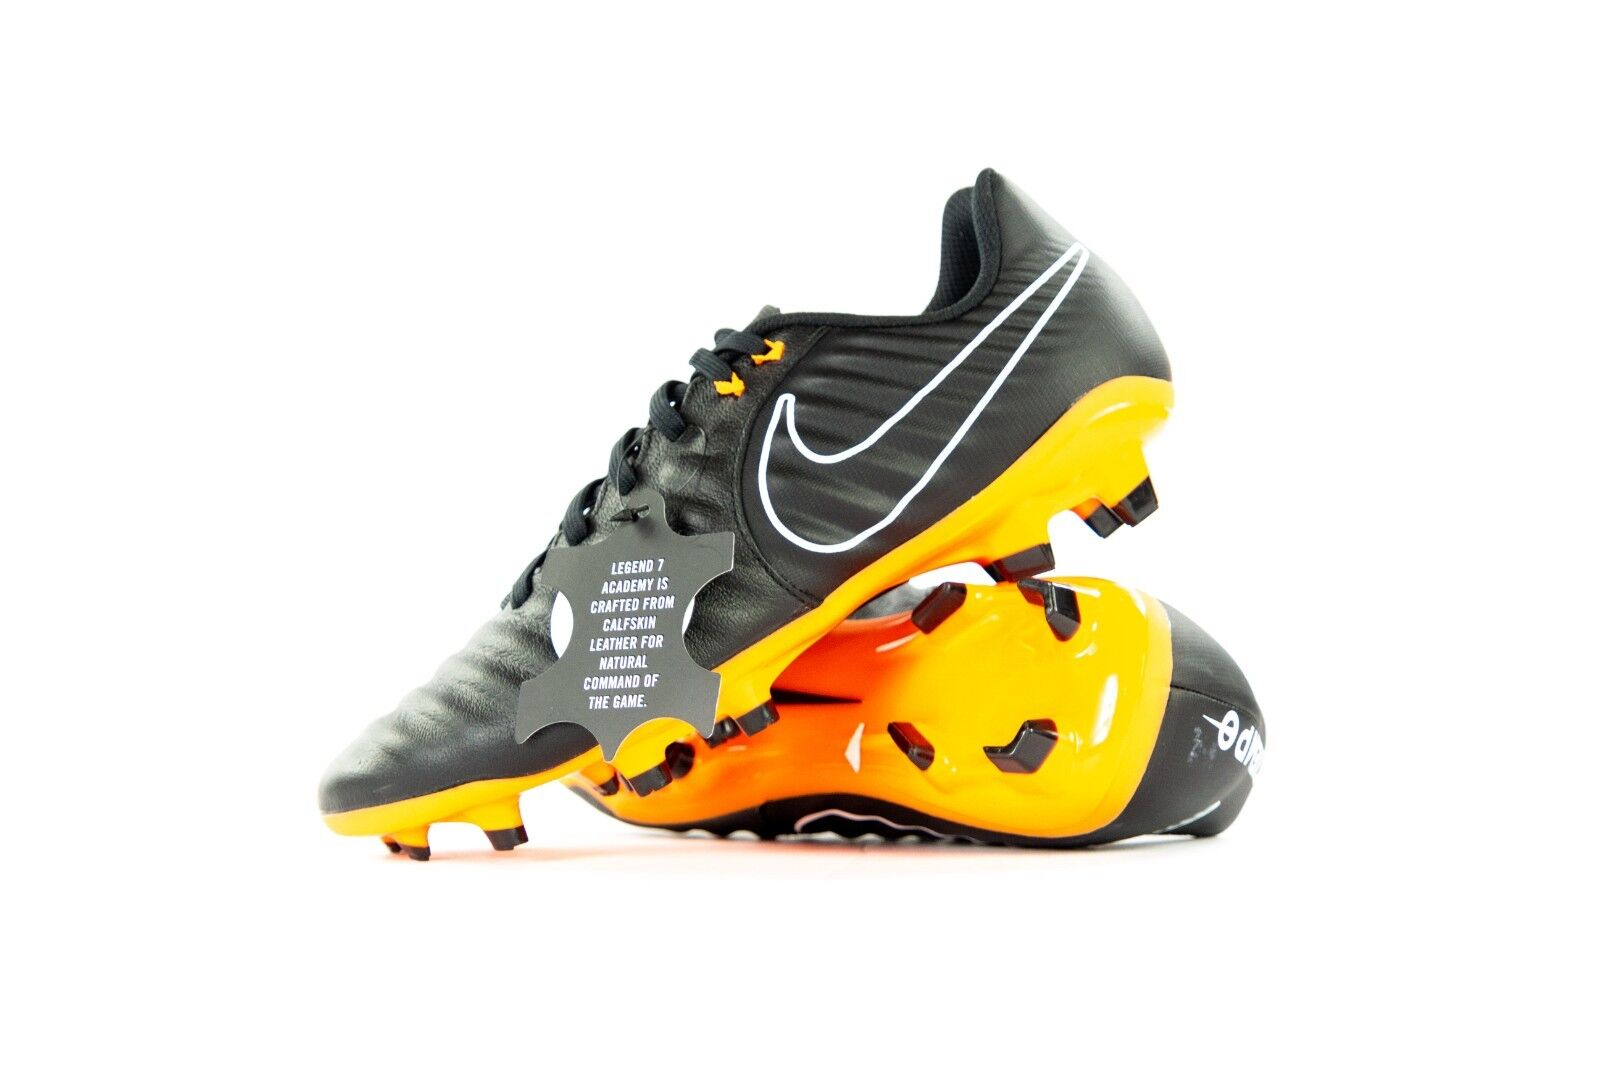 Nike Tiempo Legend 7 Academy FG Men's Soccer Cleats shoes AH7242-080 1802